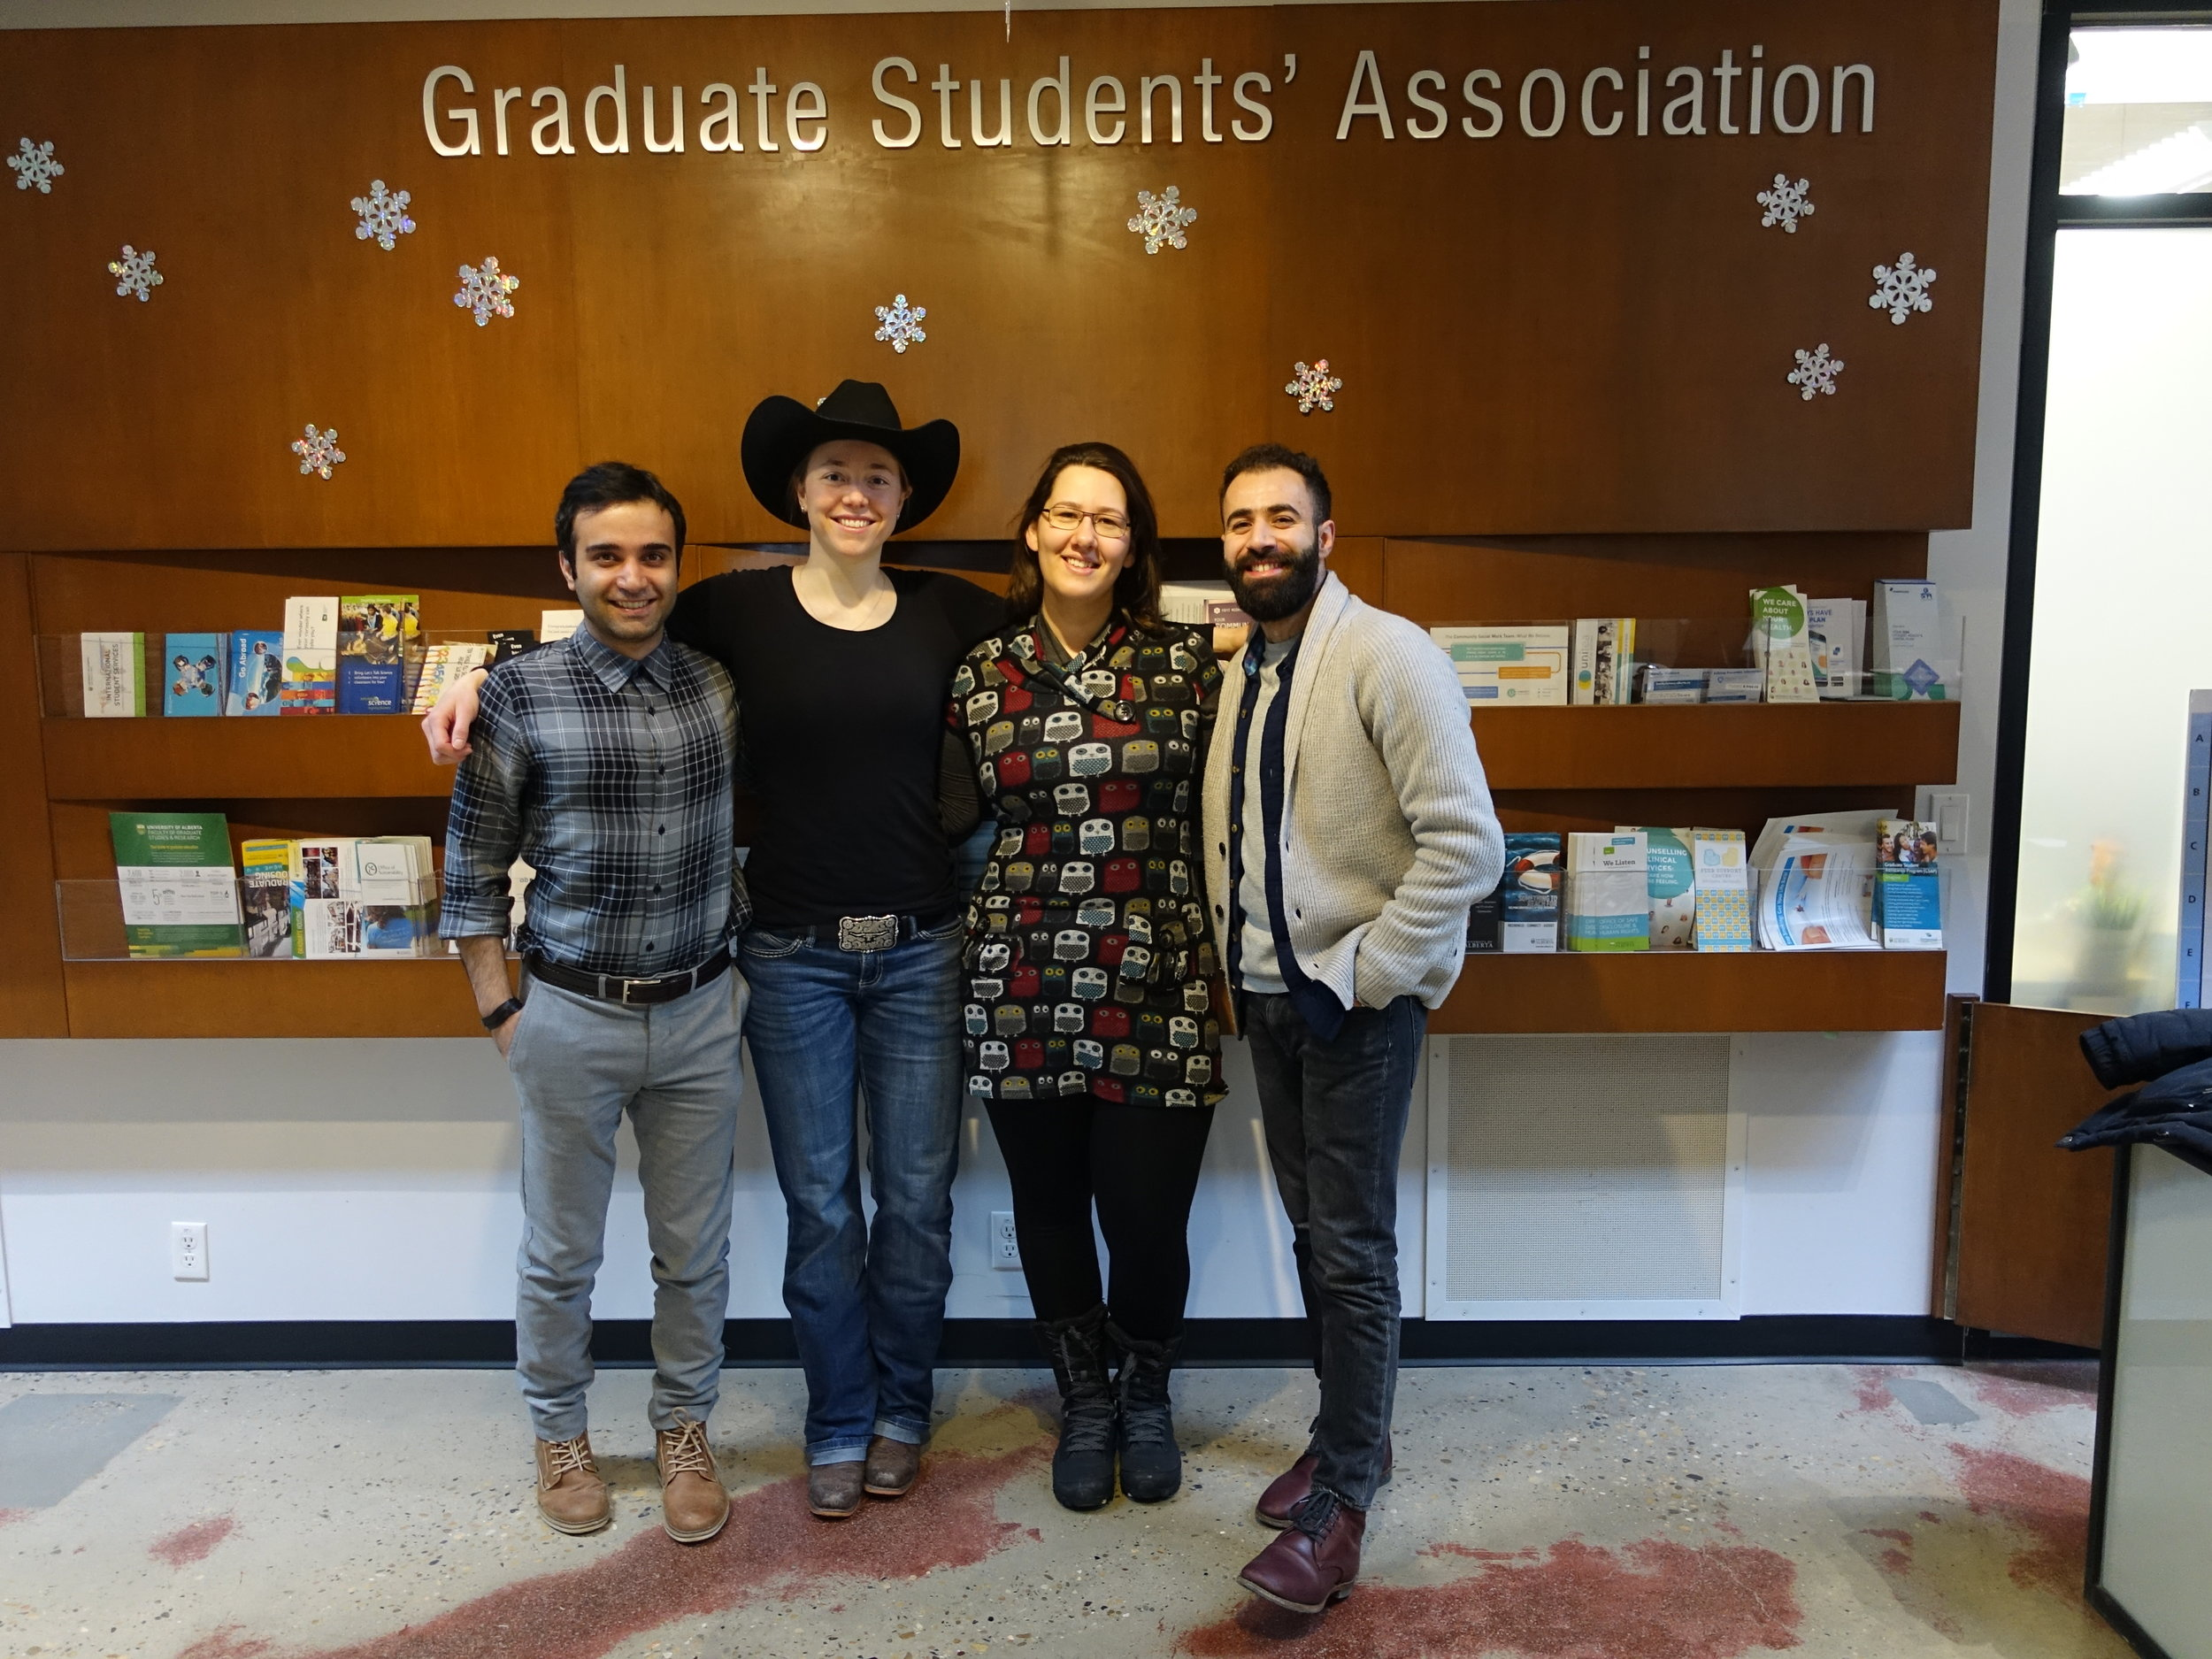 Graduate Students Association - University of Alberta Campus